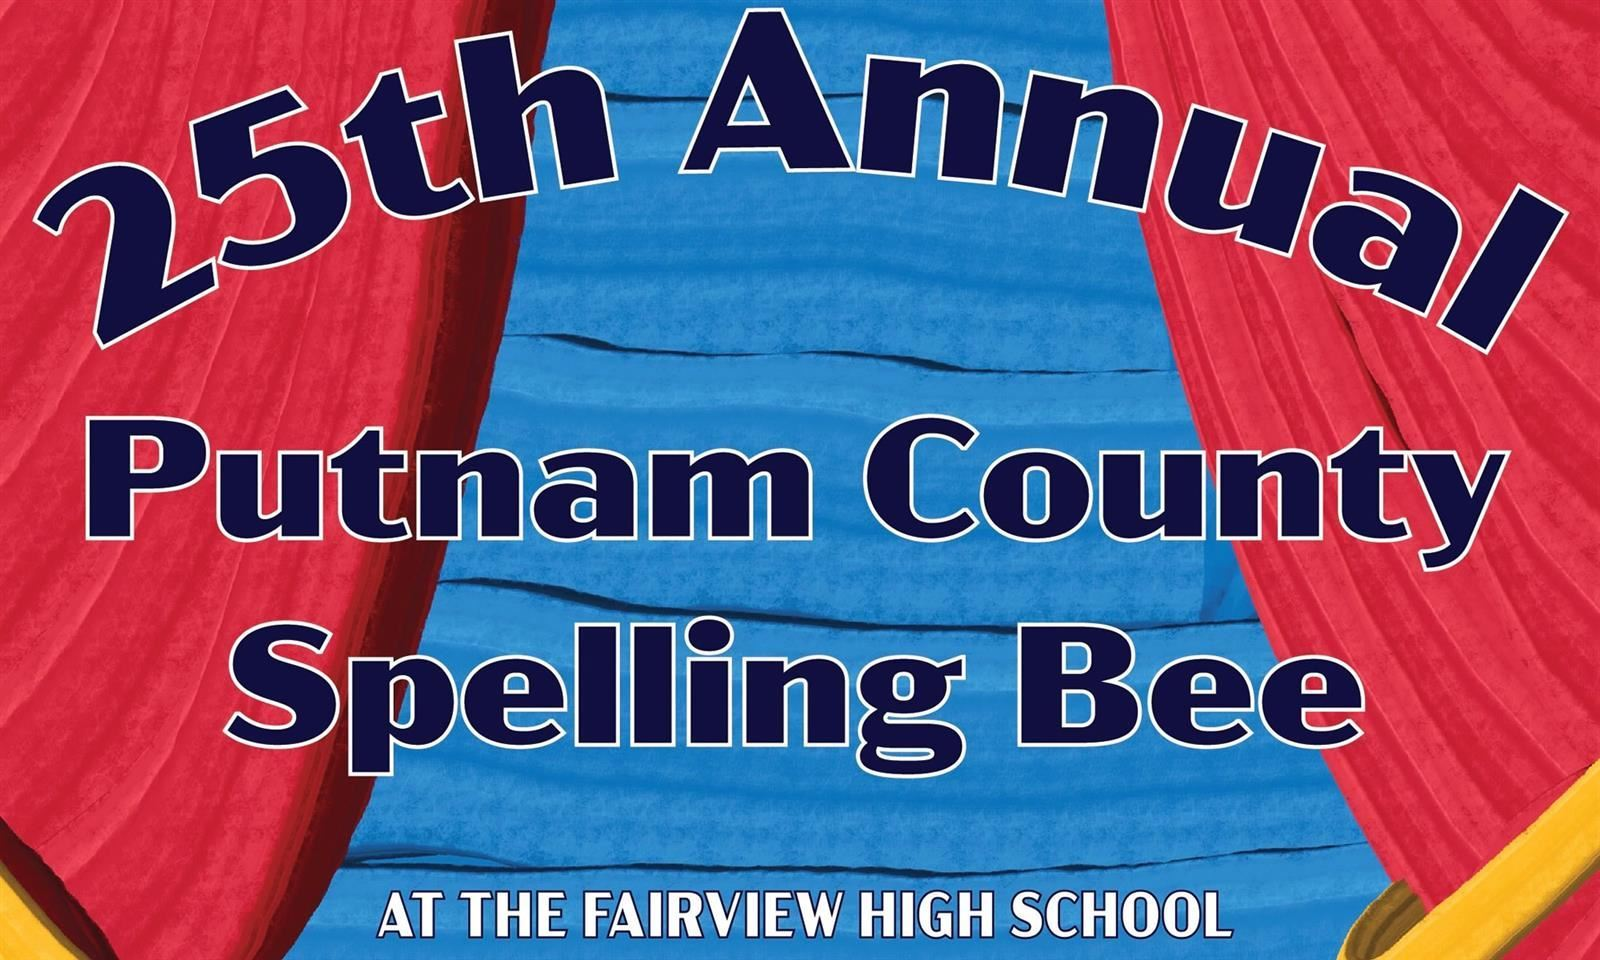 Fairview High presents The 25th Annual Putnam County Spelling Bee